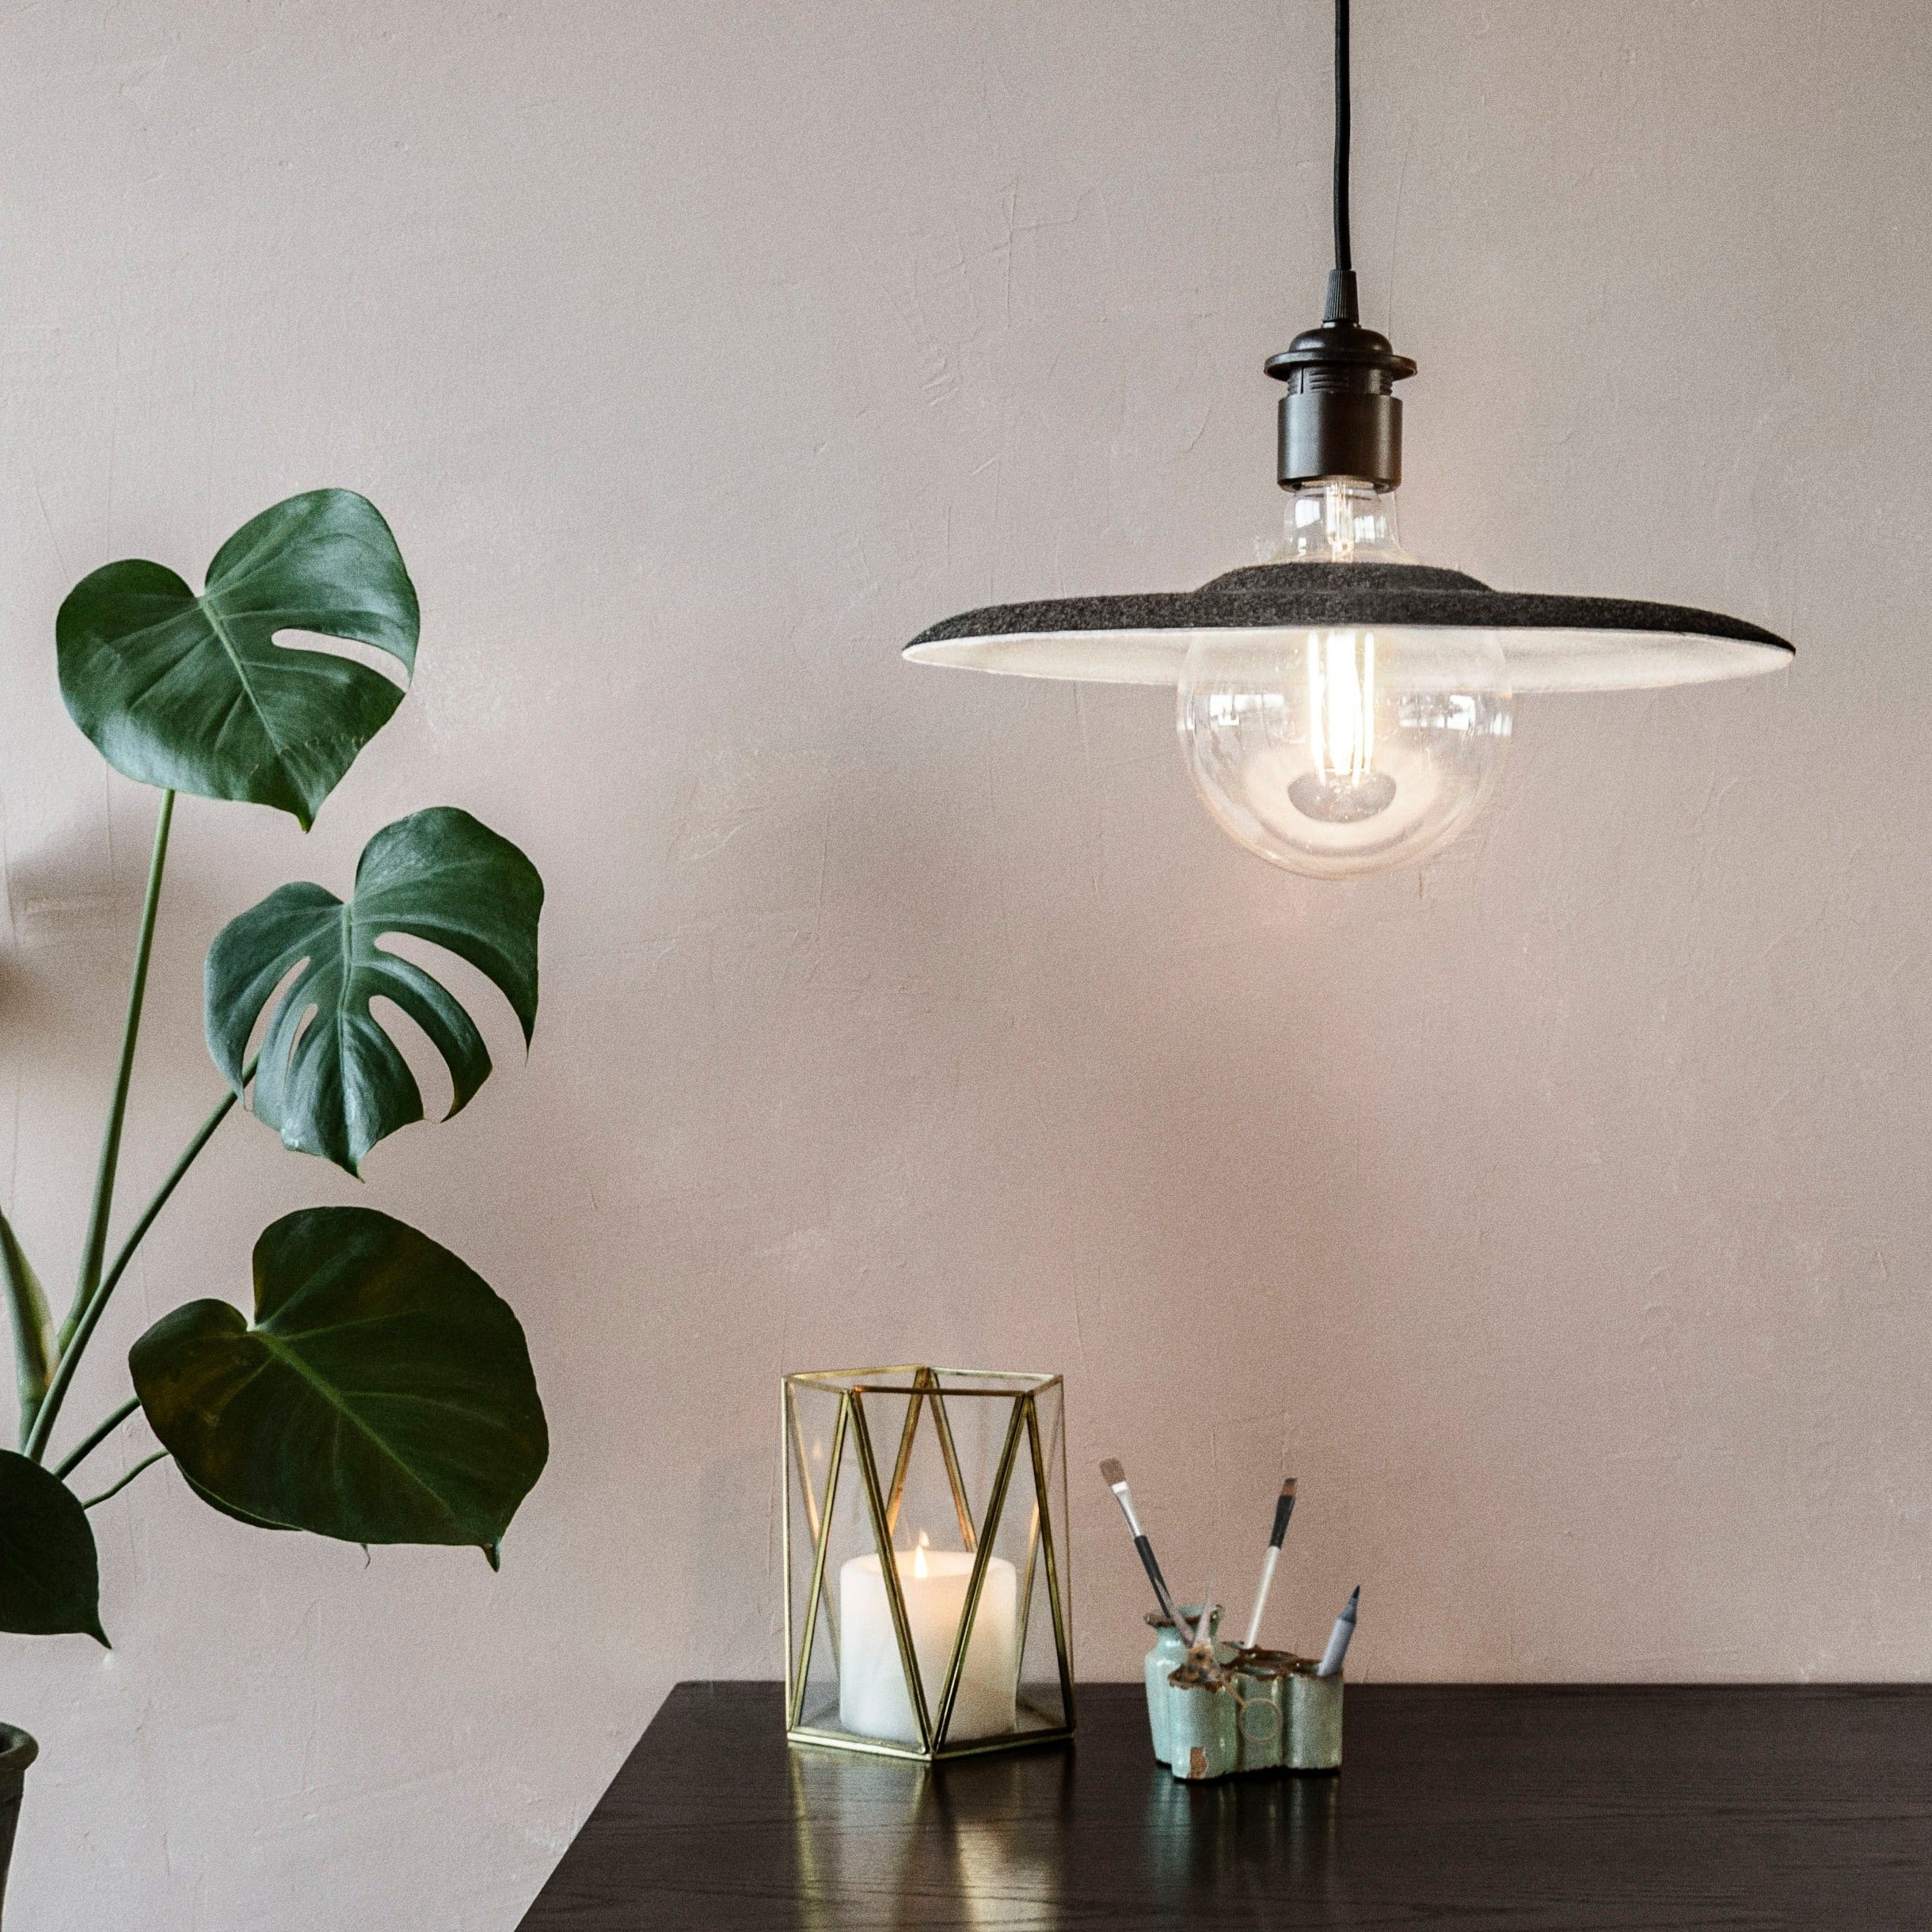 Shade & Idea lamp